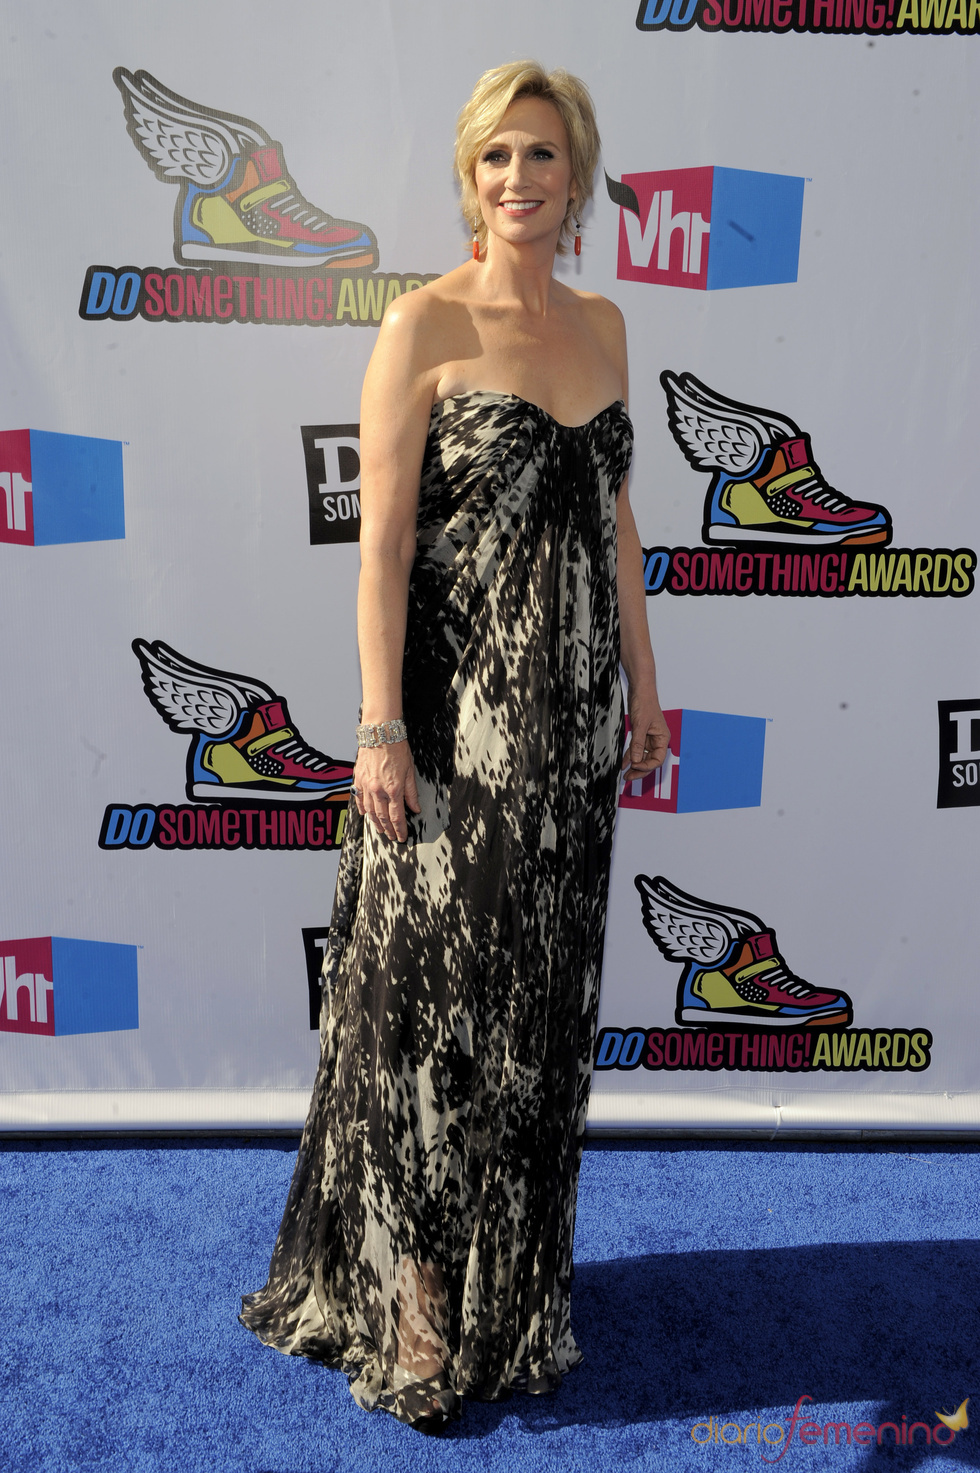 Jane Lynch en la alfombra roja de los 'Do Something Awards' 2011